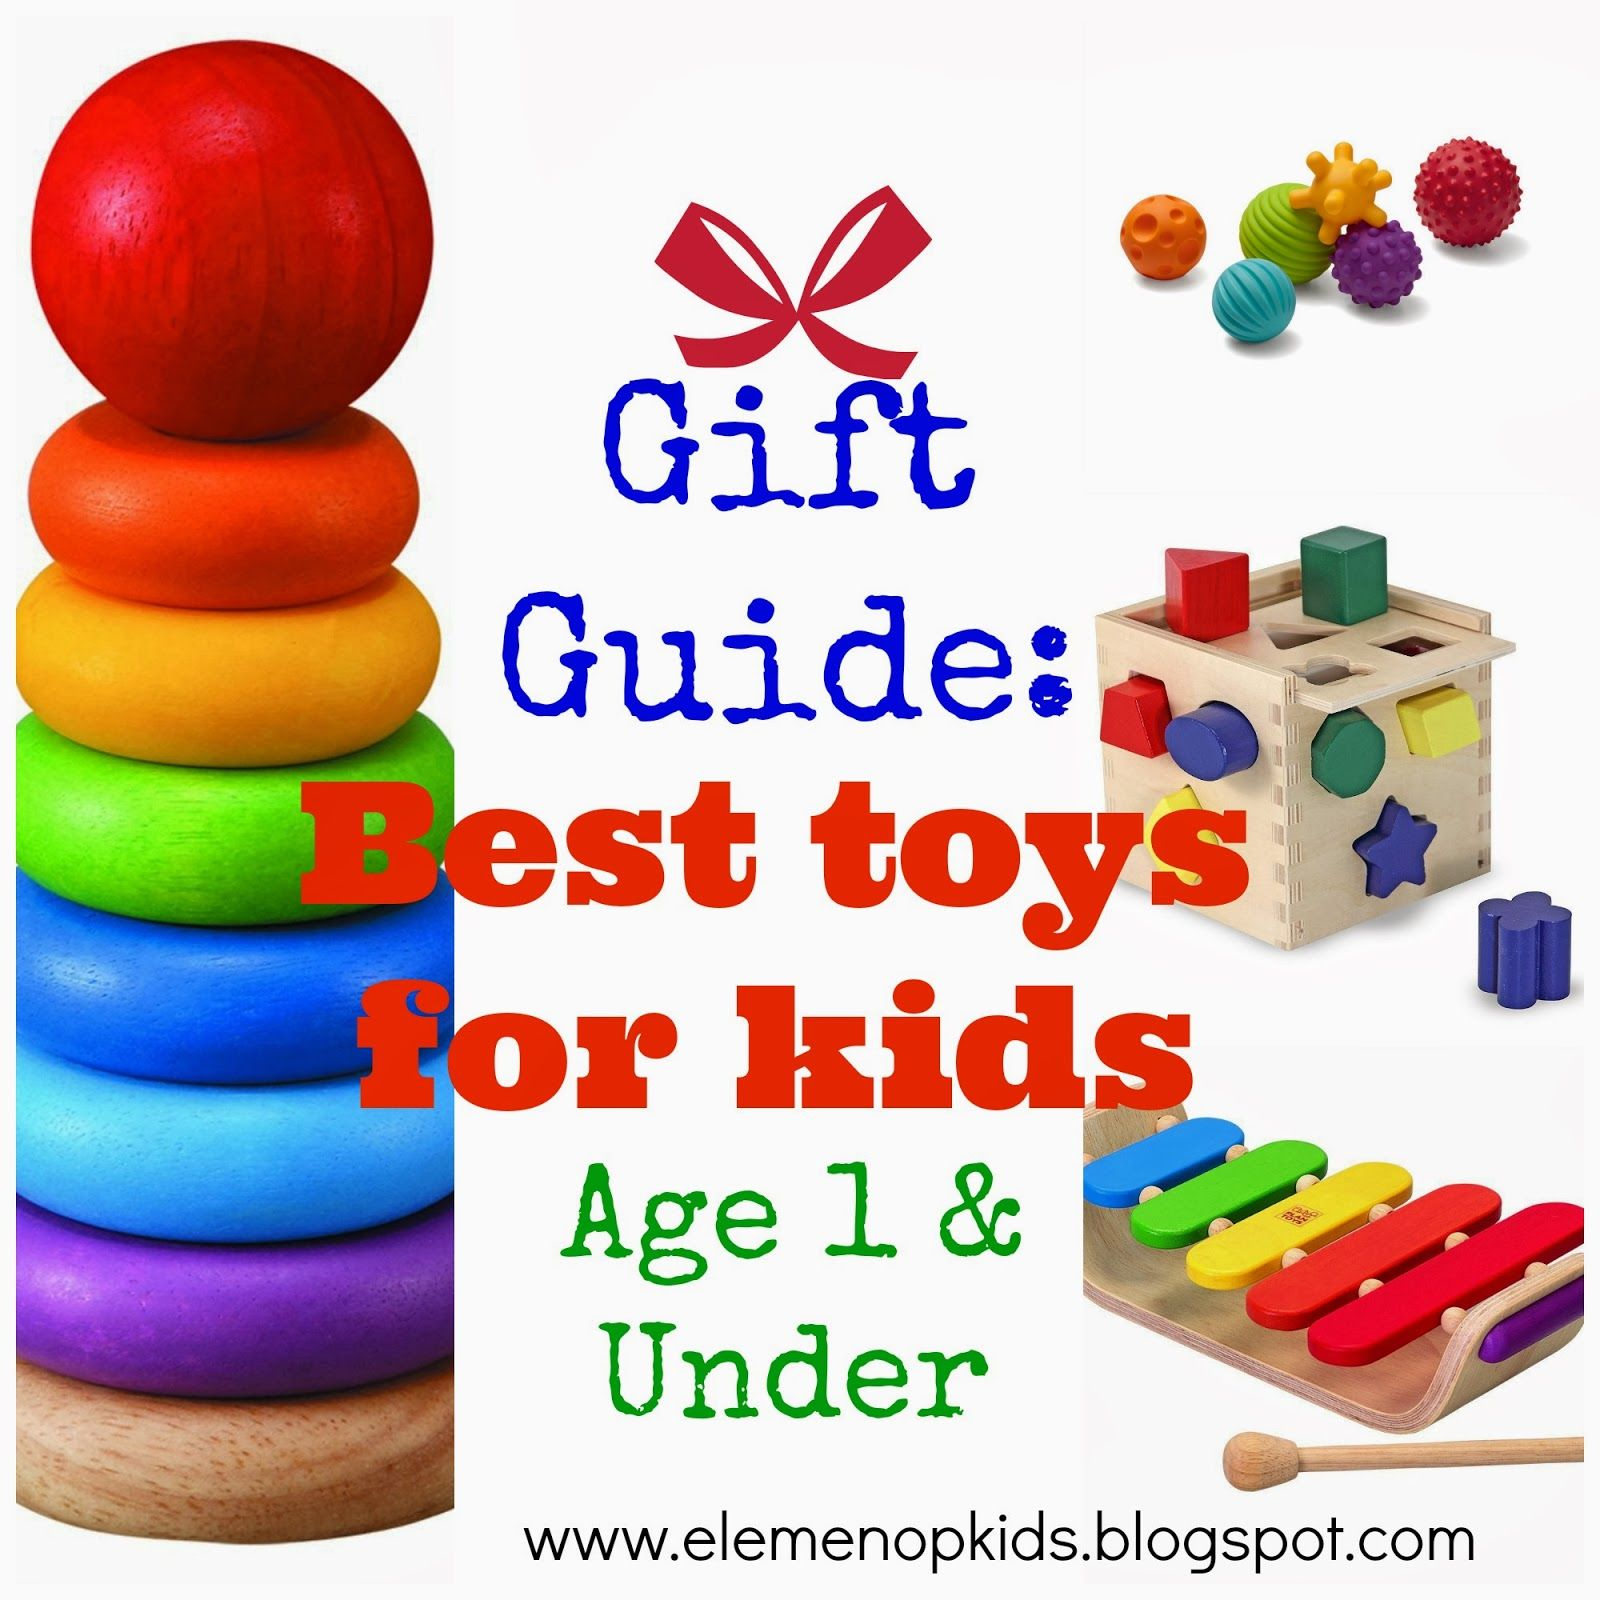 Gift Guide Toys for 1 year olds and under eLeMeNO P Kids